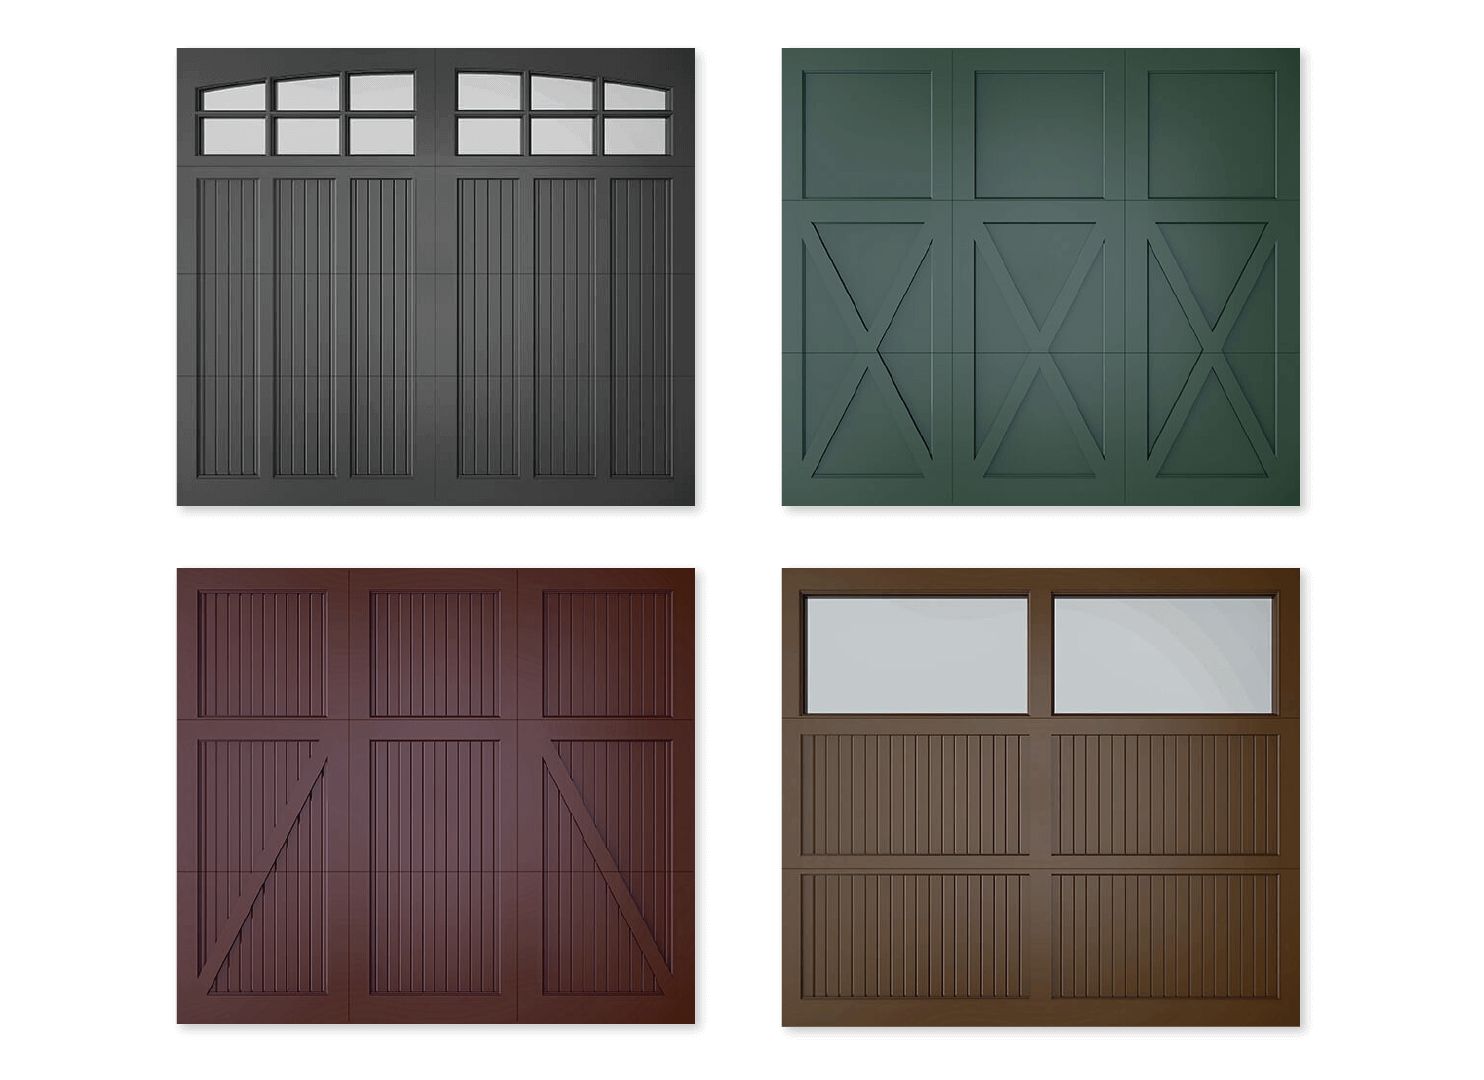 Timberlane offers multiple garage door styles including classic, carriage, trifold, and farmhouse